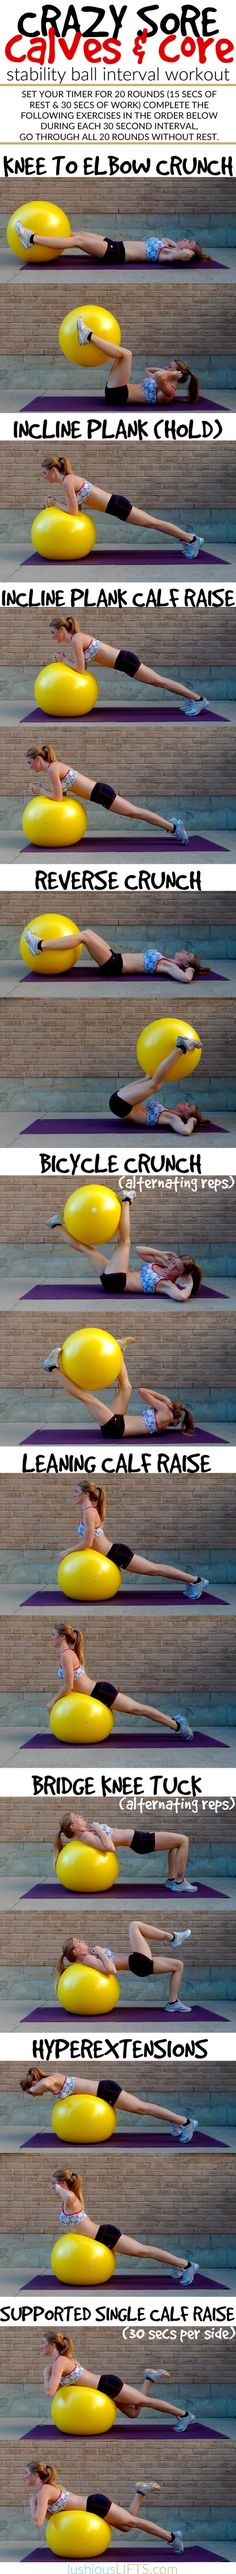 Crazy Sore Calves & Core {Stability Ball Interval Workout} || lushiousLIFTS.com